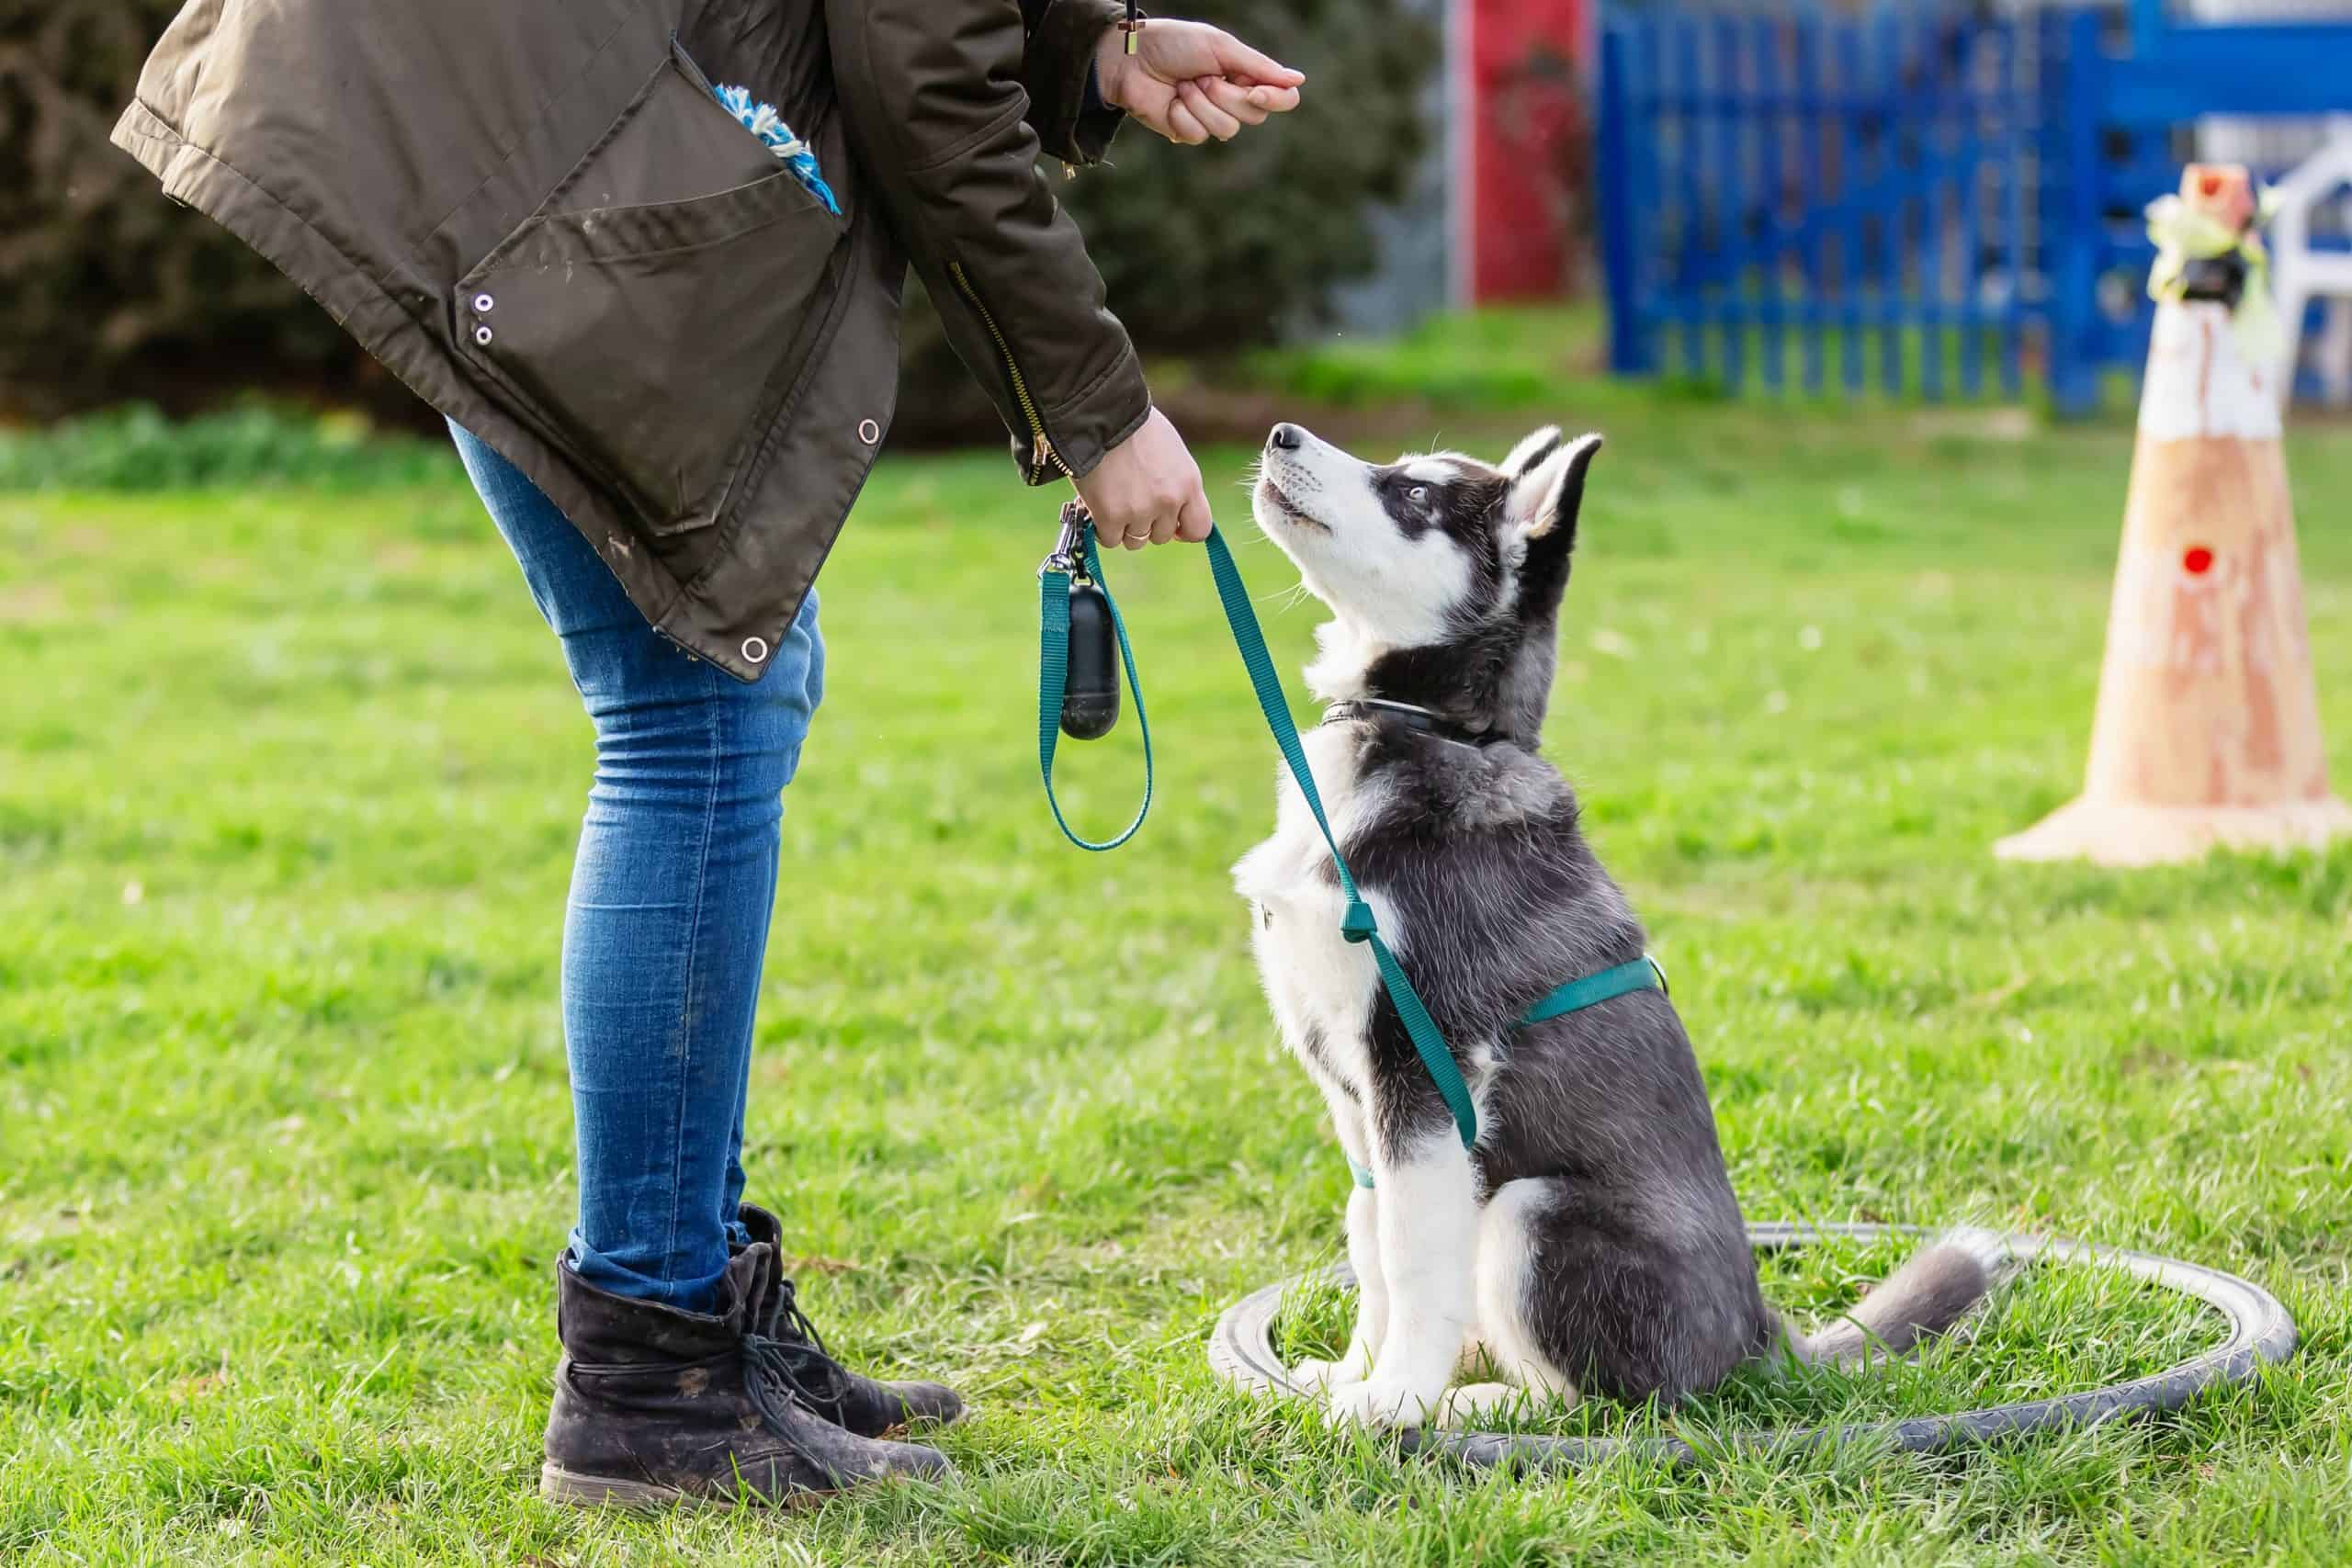 Owner trains Husky puppy. If your pet displays dog behavior issues like chewing, barking, or aggression, curbing those problems isn't punishment. Use positive reinforcement training to teach your dog how to behave.